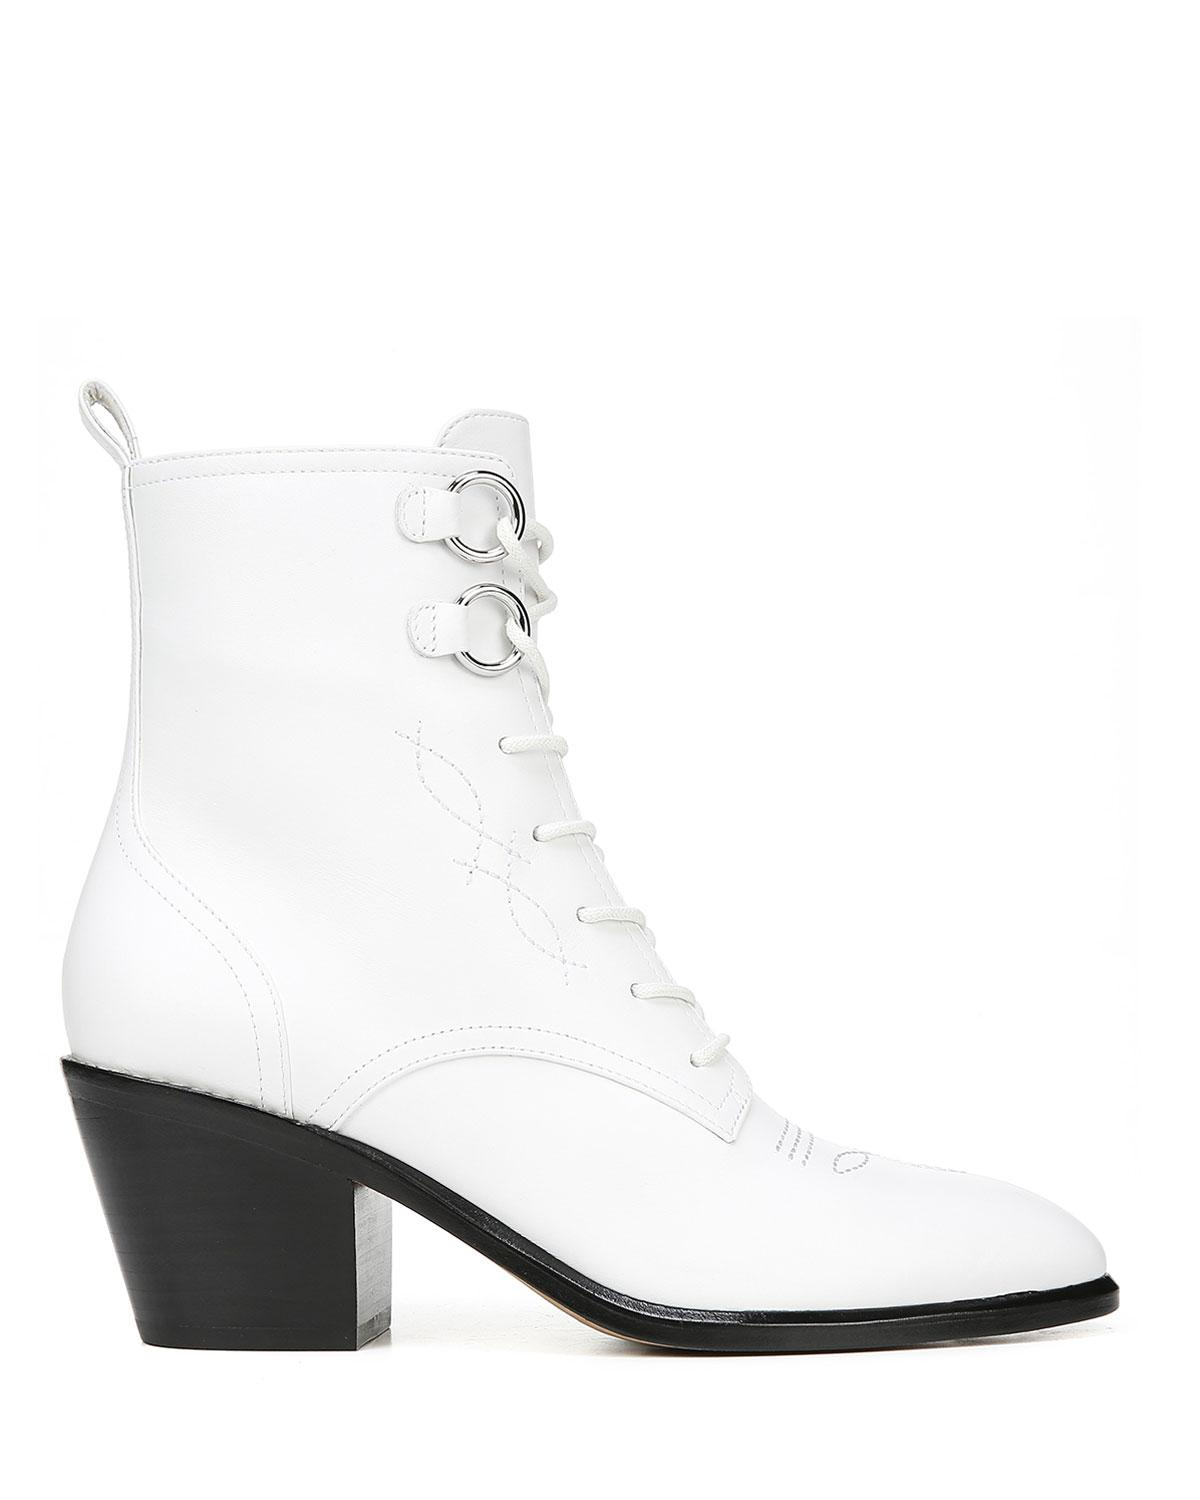 e62d2c863521 Lyst - Diane von Furstenberg Dakota Leather Lace-up Boots in White